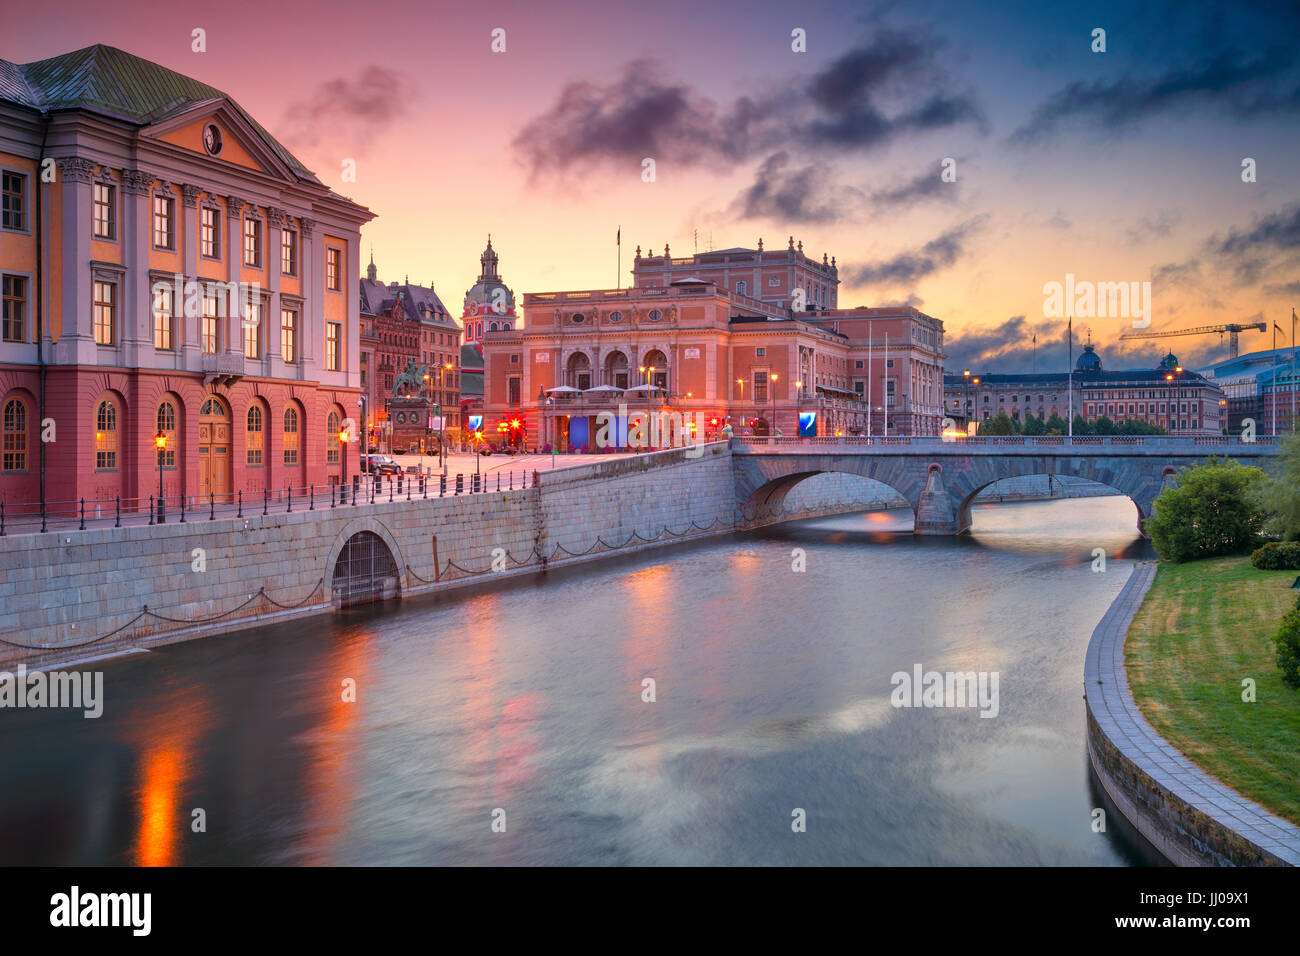 Stockholm. Image of old town Stockholm, Sweden during sunrise. - Stock Image